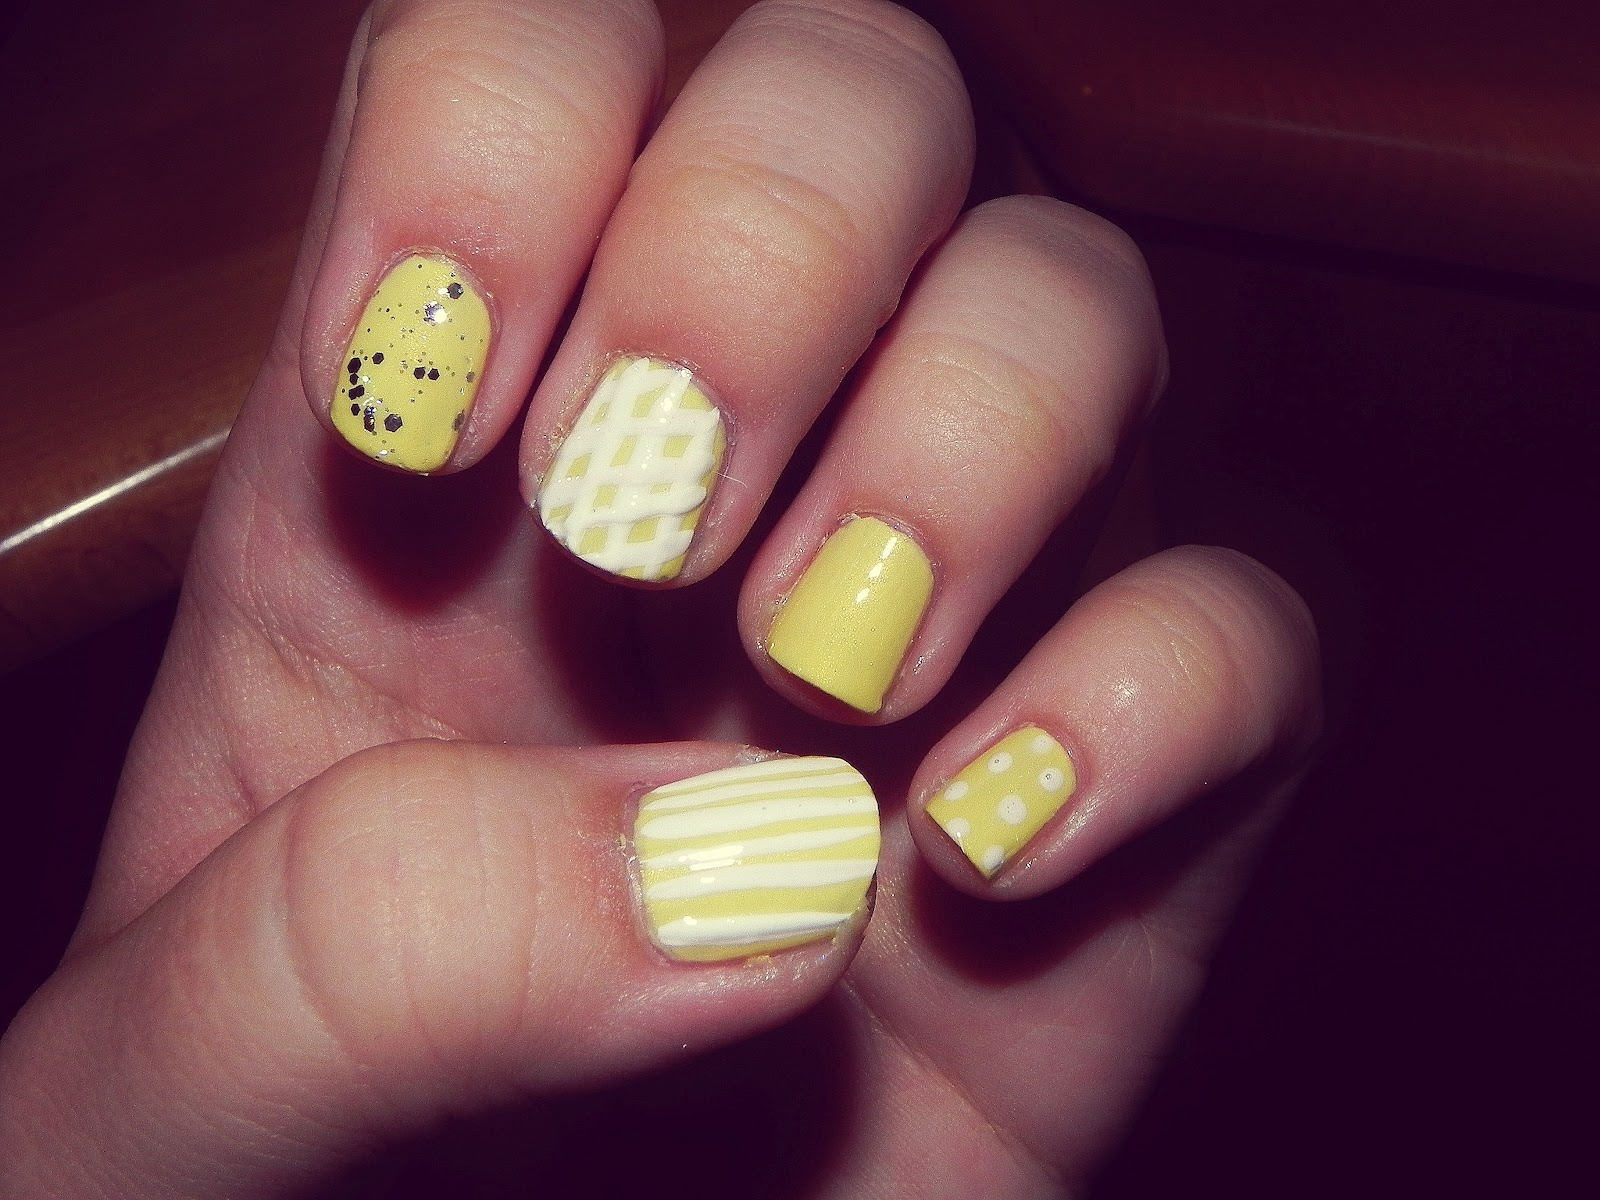 Cute summer nail designs tumblr nails although this chicks cute summer nail designs tumblr cute summer nail designs tumblr nails prinsesfo Choice Image